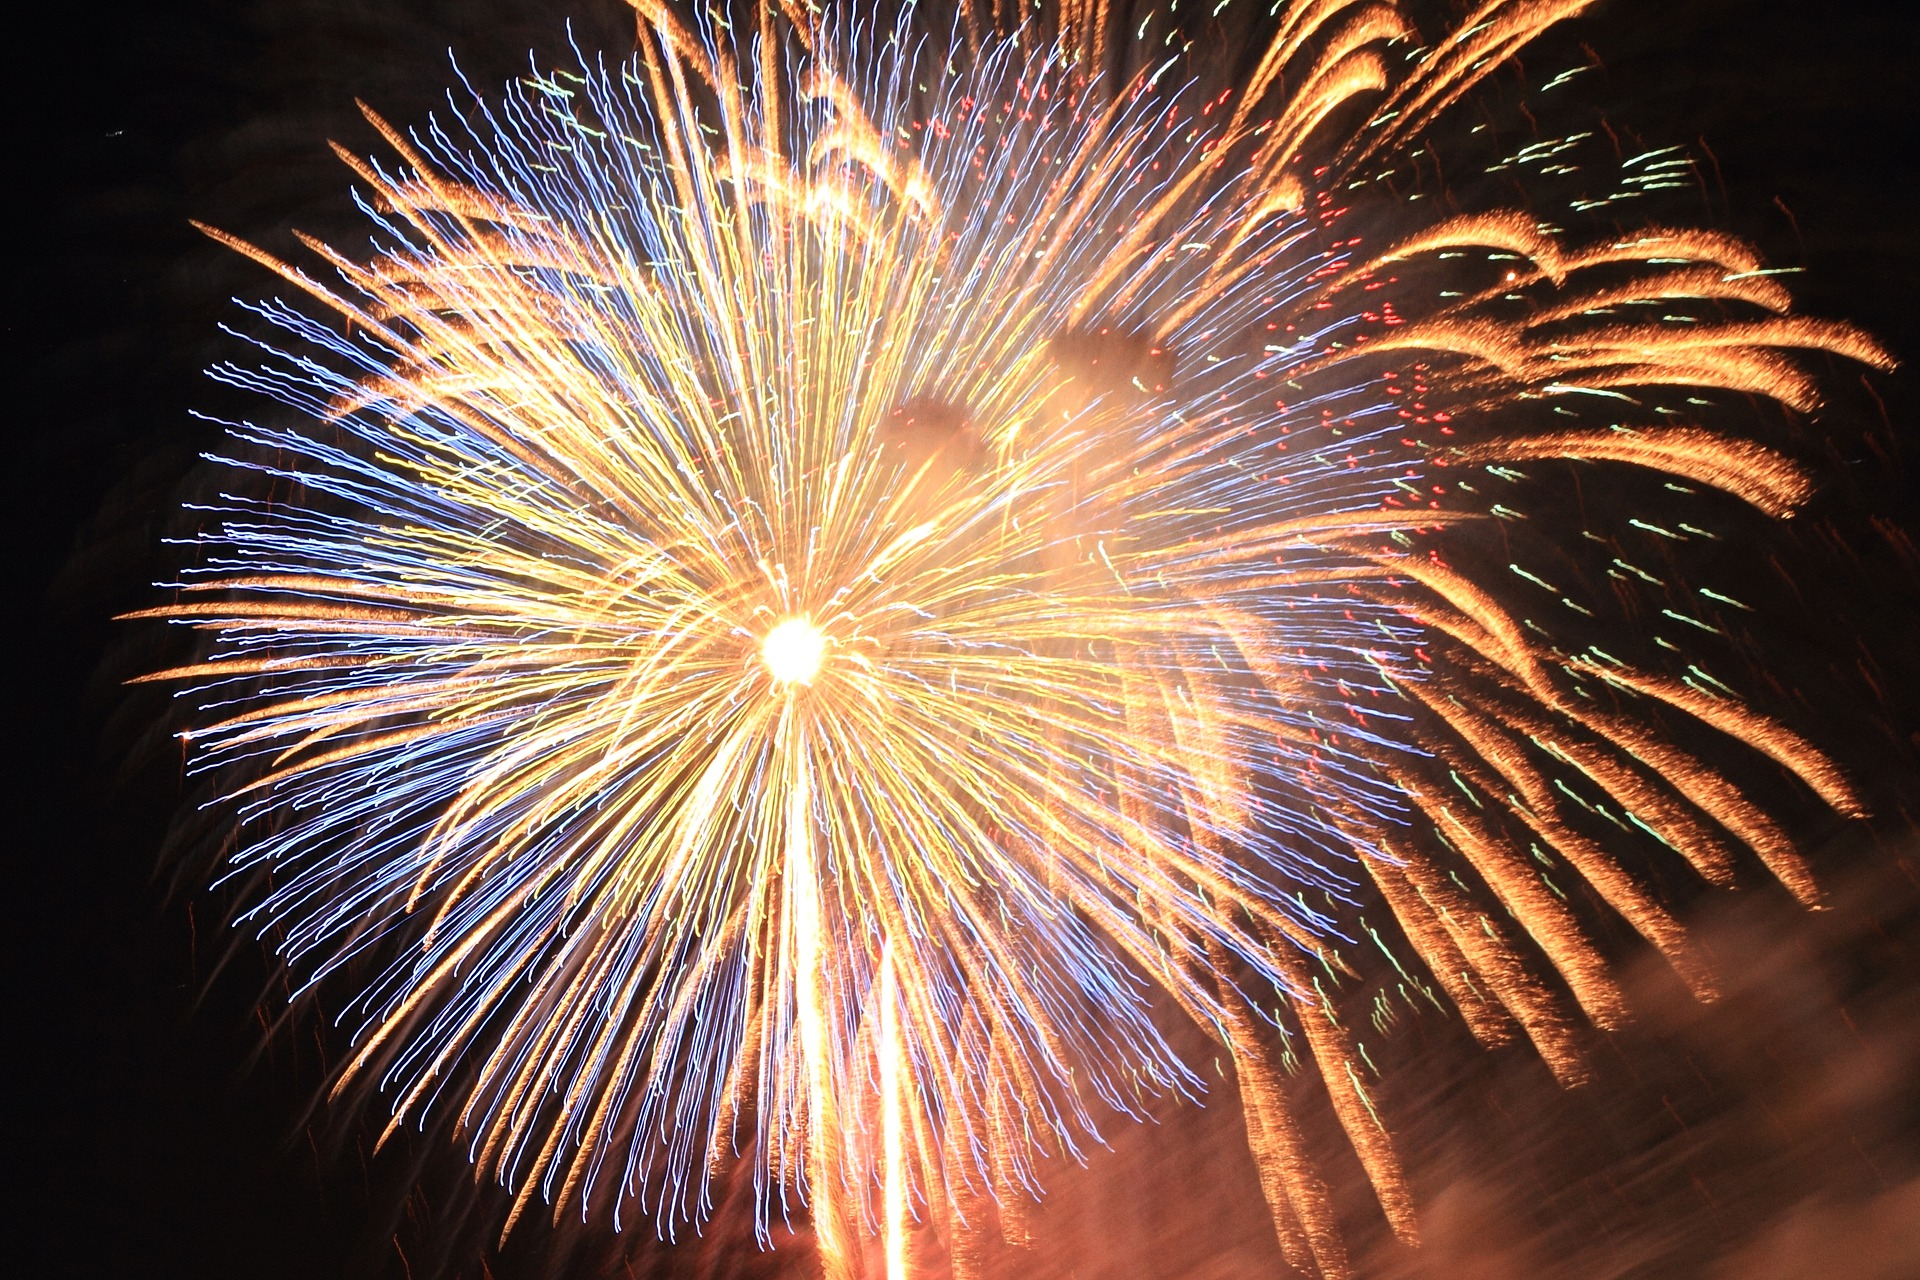 Under New Ordinance L  Saucon Fireworks Displays Must End By 10